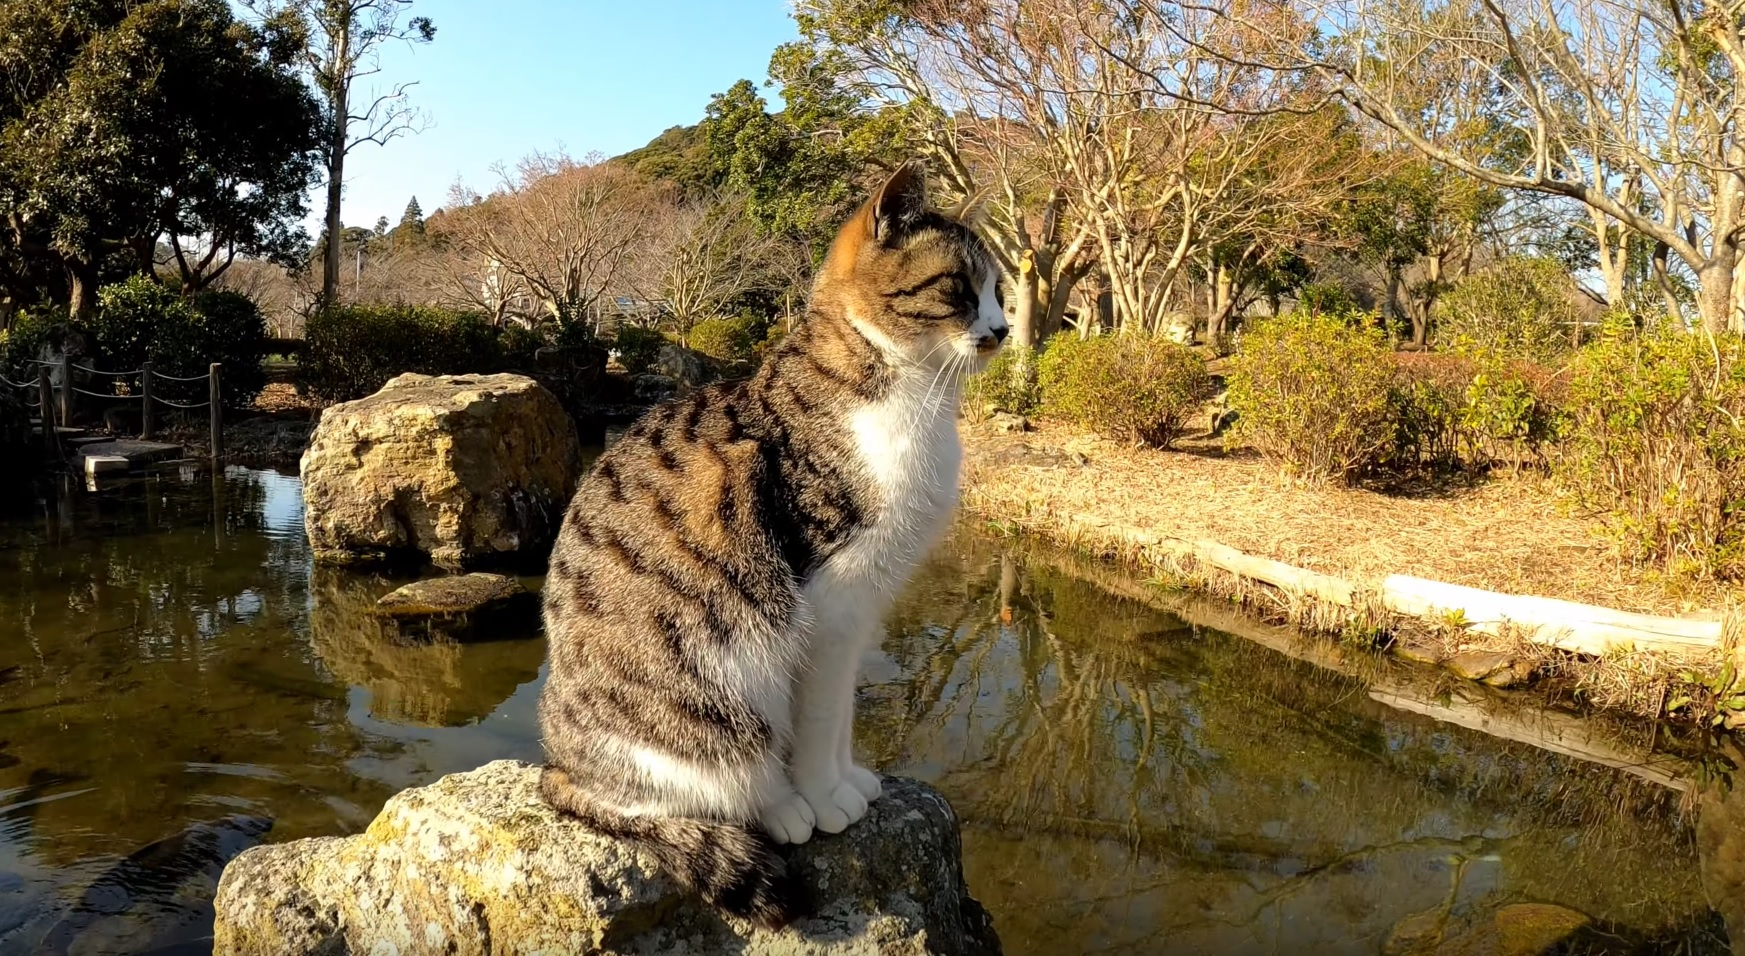 Supurrvising The Pond